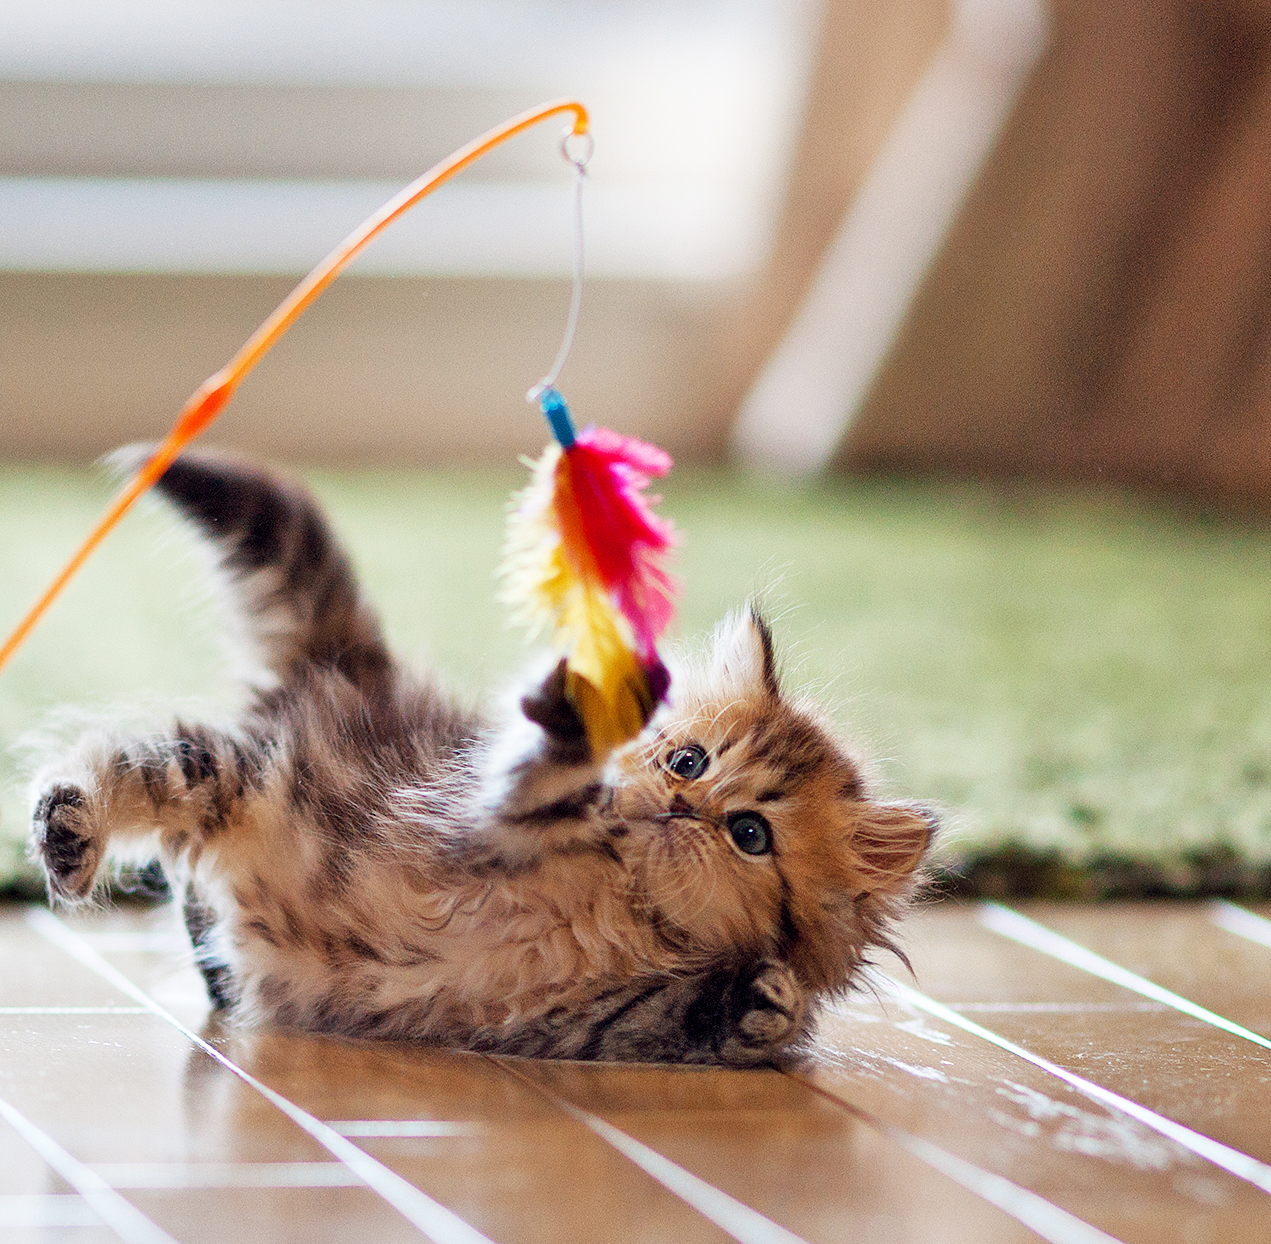 Persian kitten plays with dangling toy on wood floor